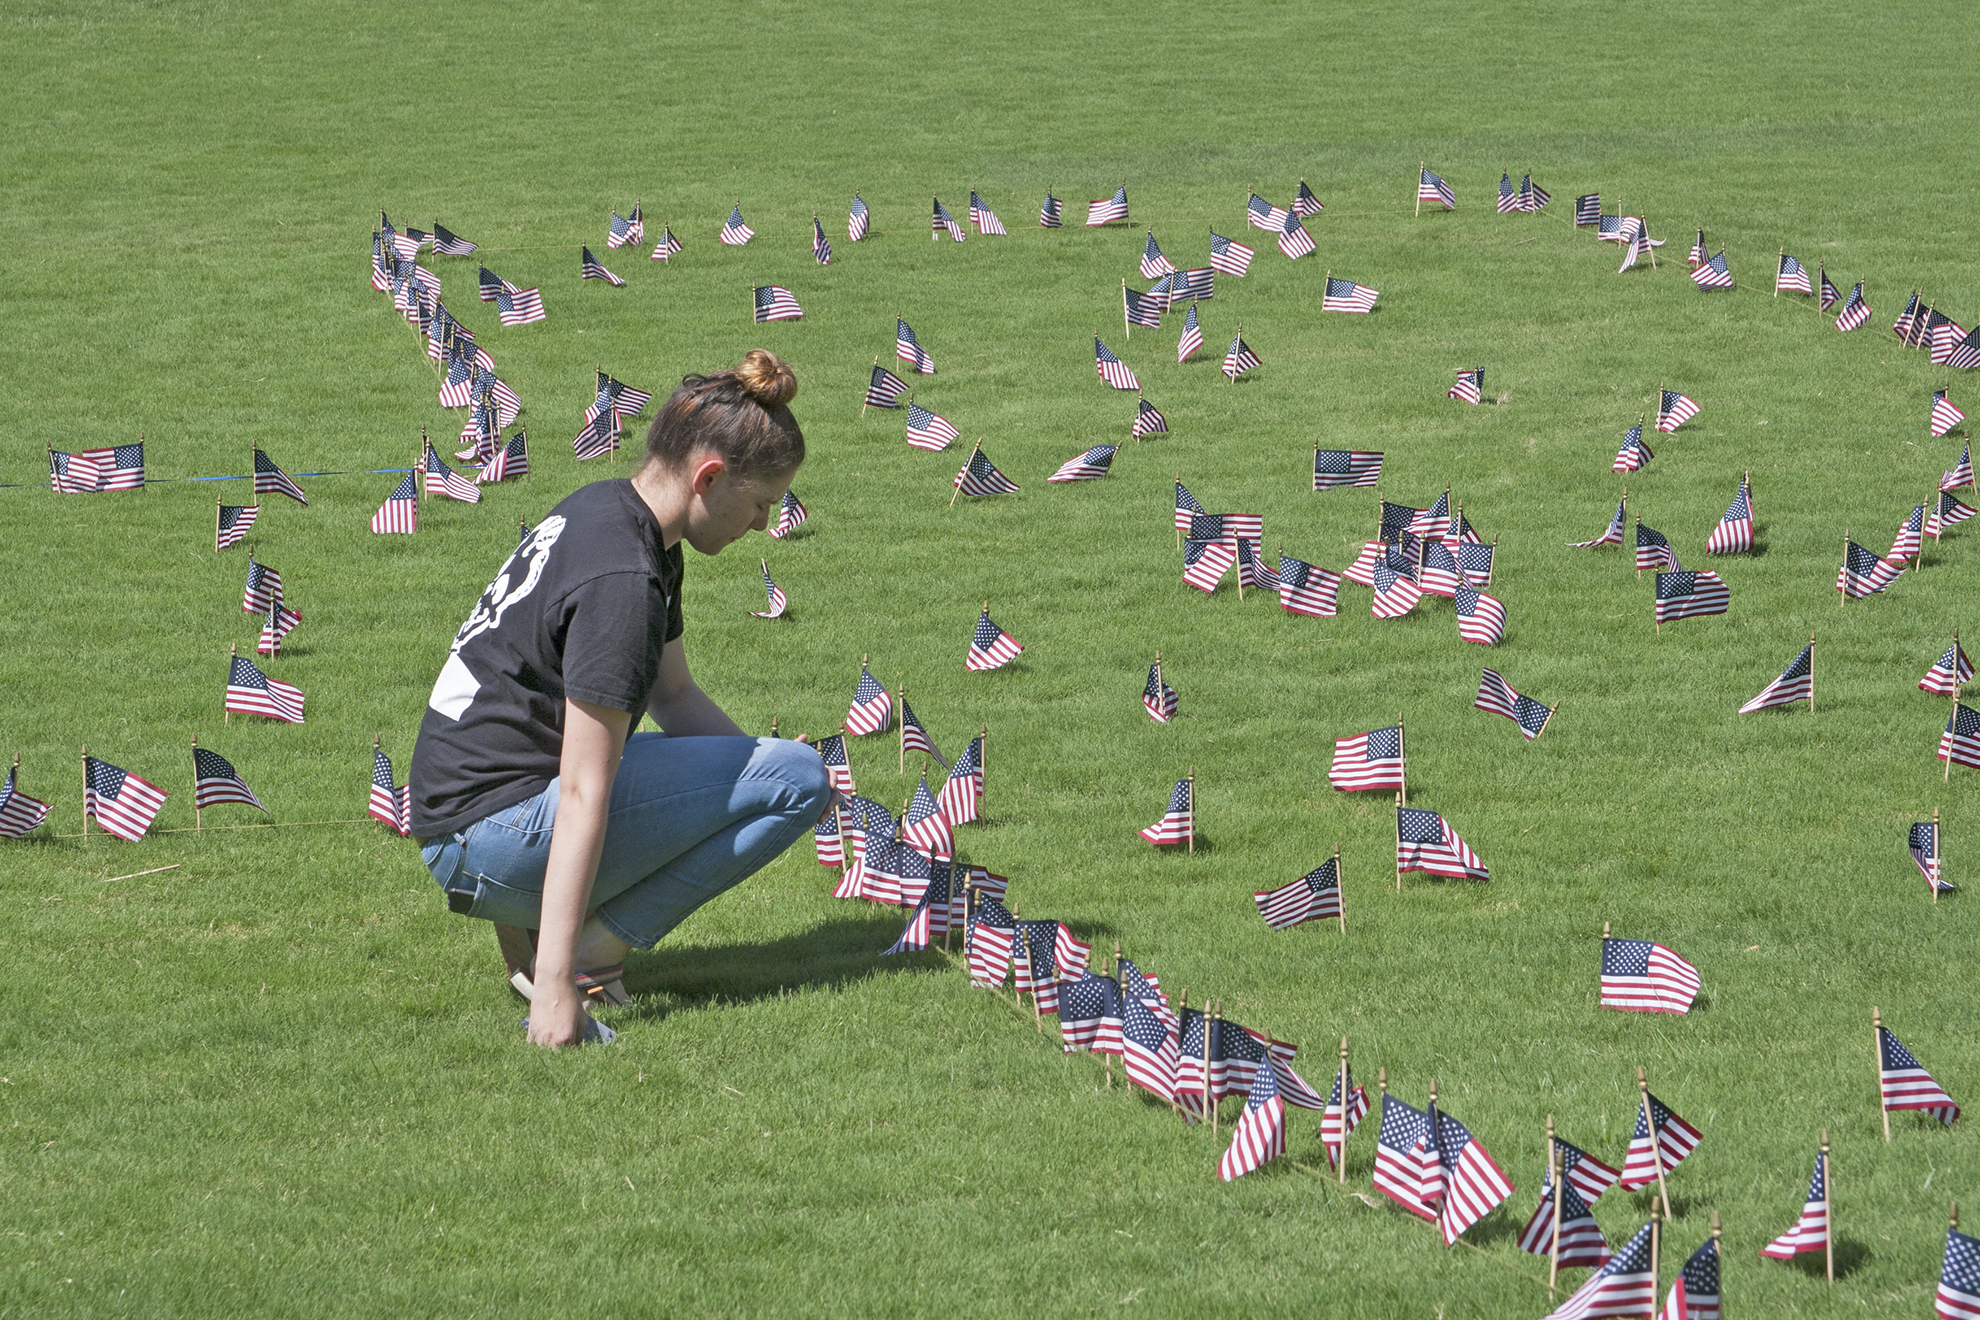 CBU reflects on the 16th anniversary of 9/11